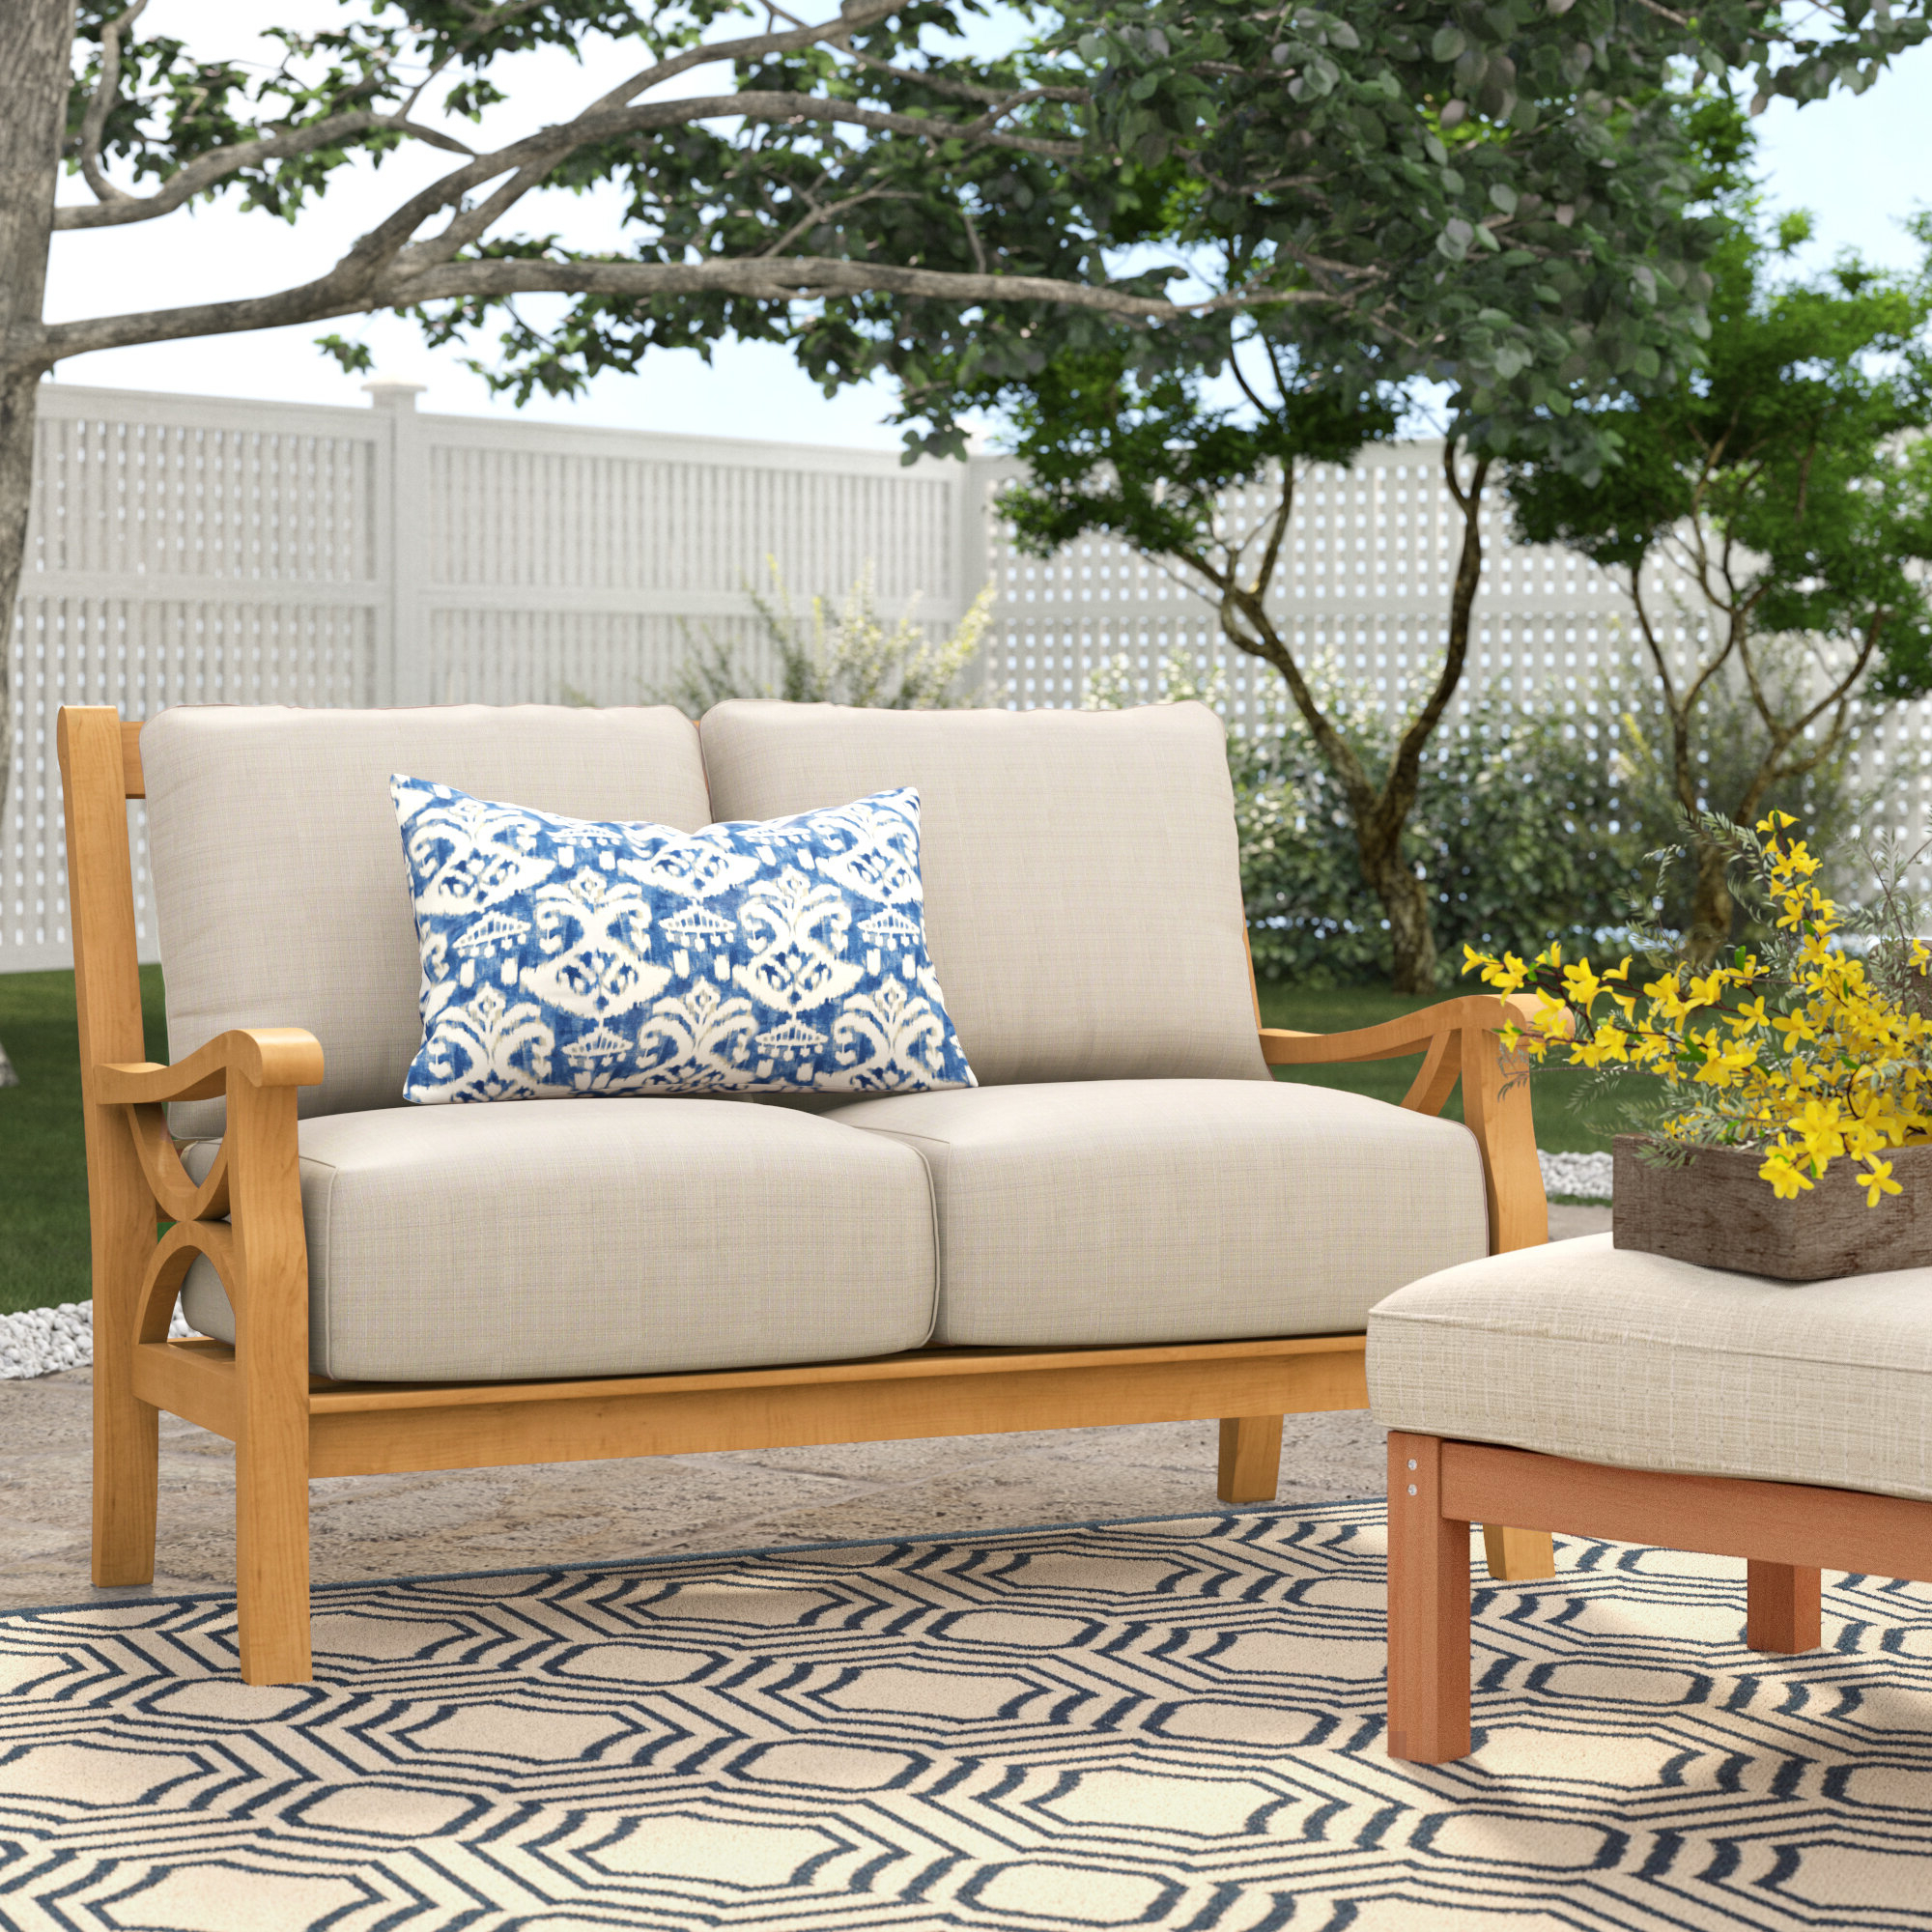 Well Liked Brunswick Teak Loveseat With Cushions Regarding Englewood Loveseats With Cushions (View 19 of 20)